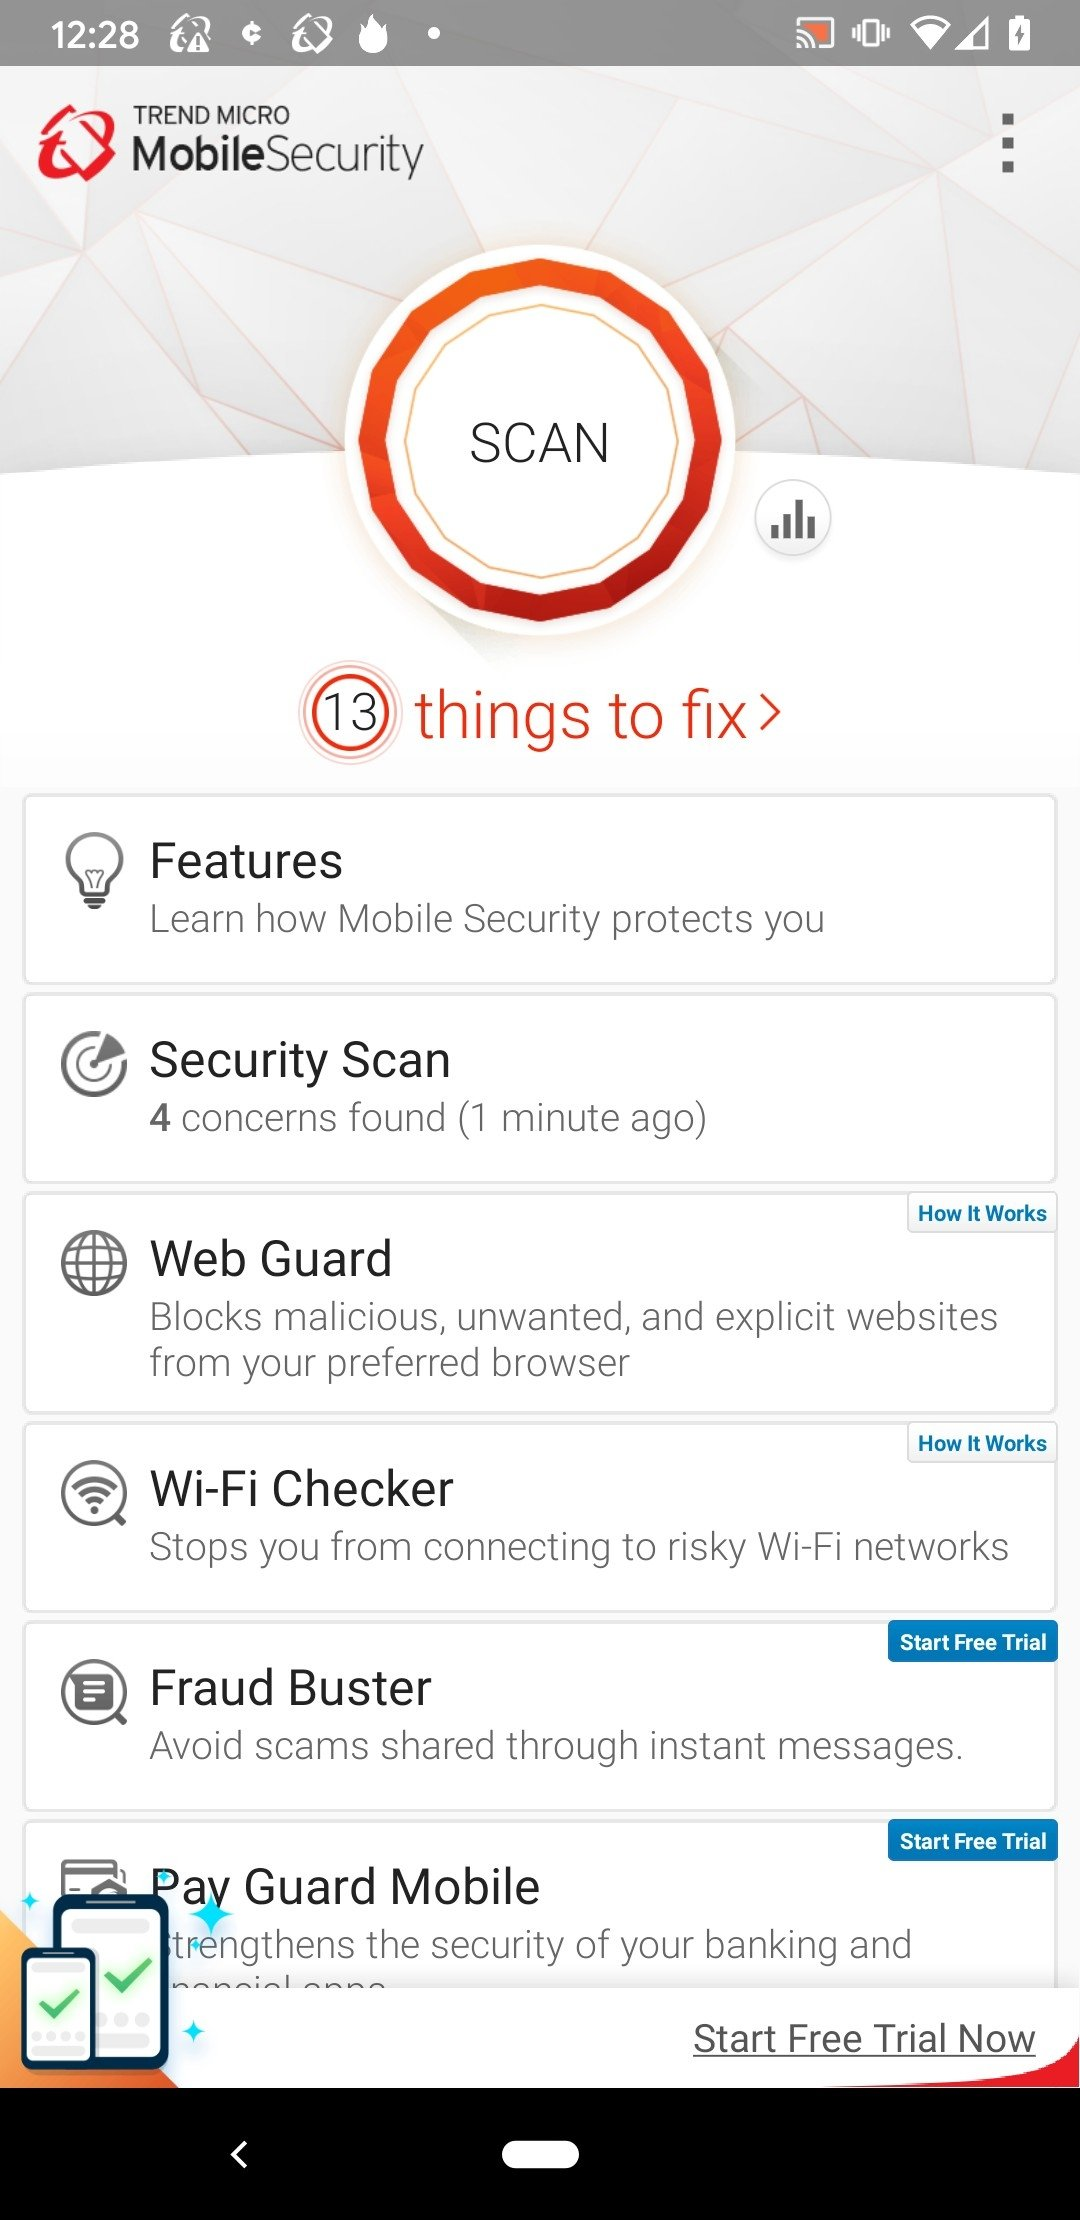 Trend Micro Mobile Security & Antivirus Android image 8